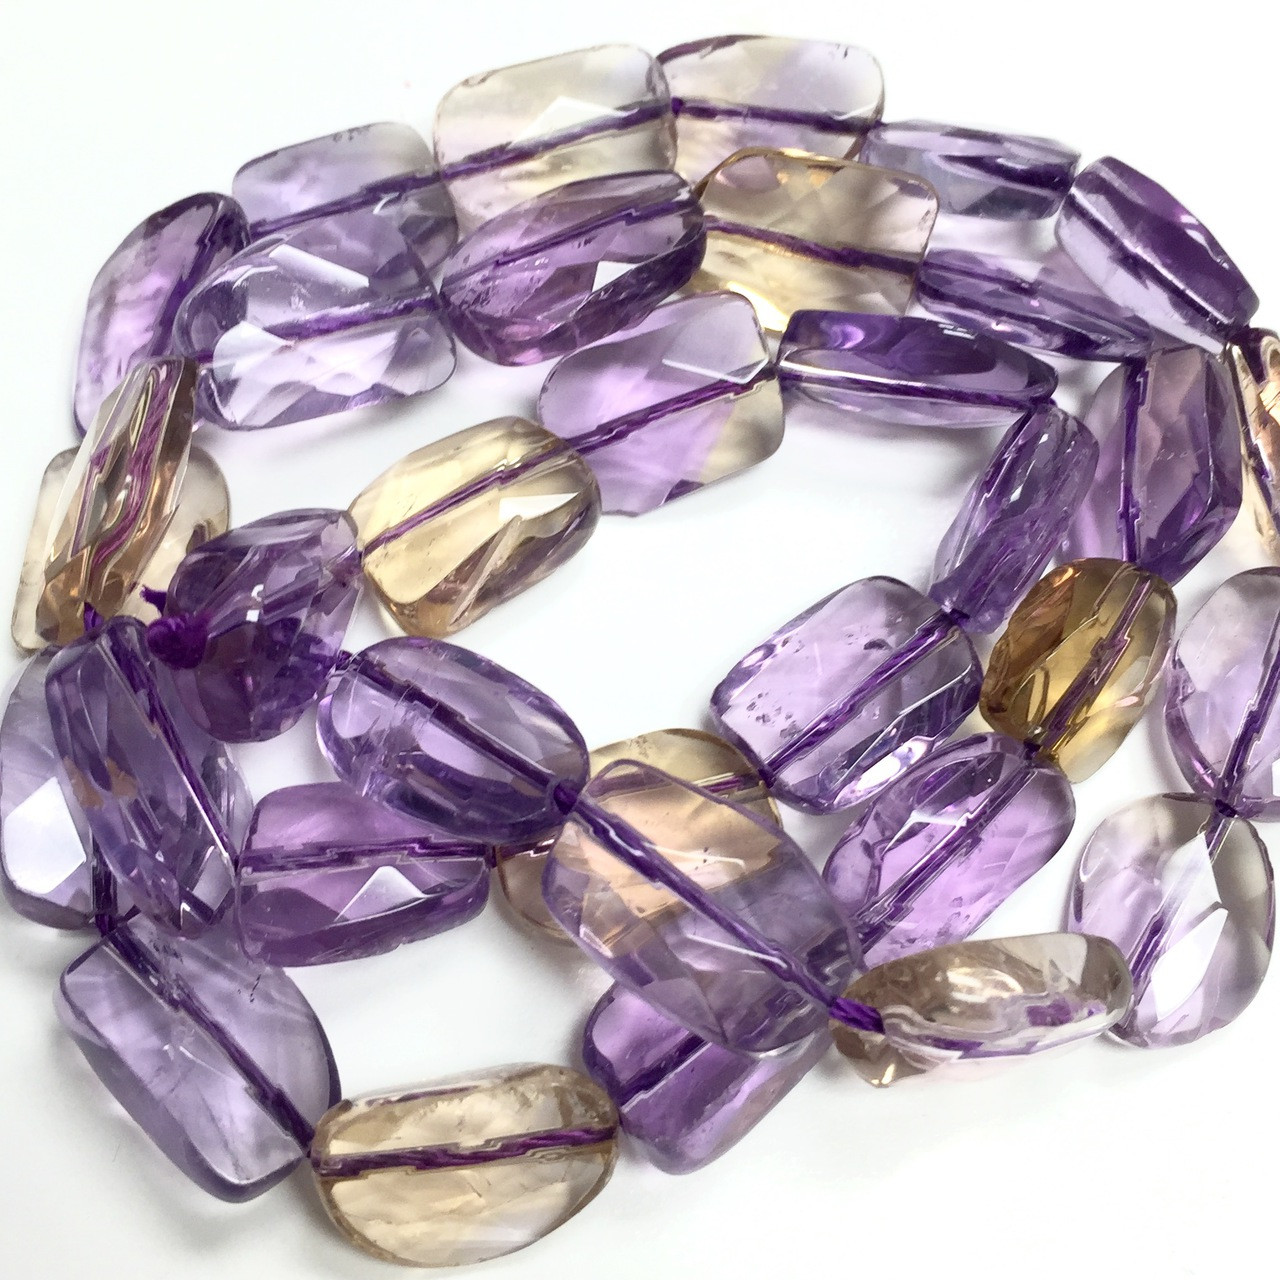 Natural Ametrine Faceted Nuggets 10-12mm Very Rare 8 Inch Strand